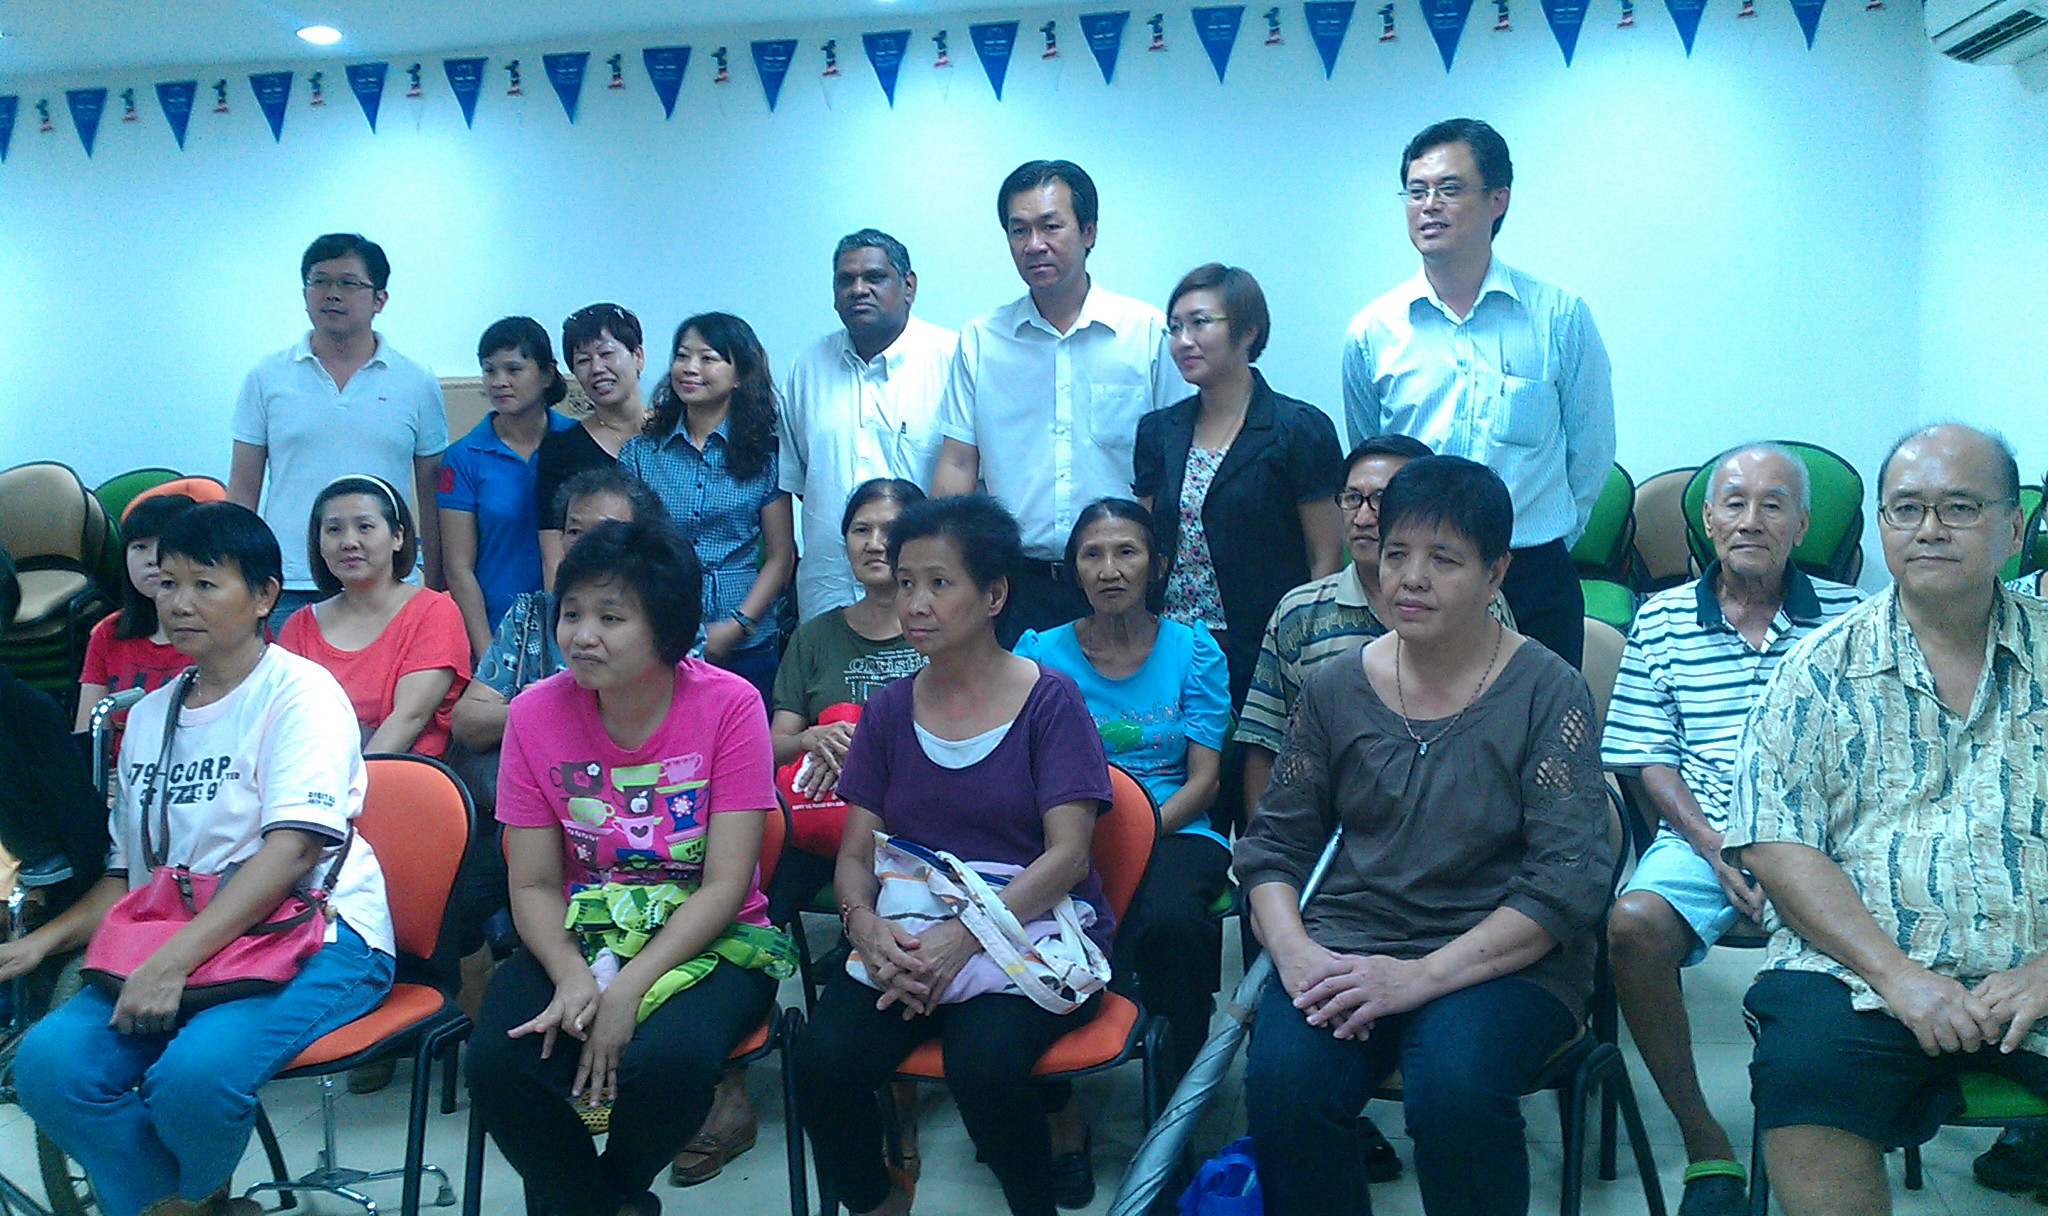 Tan, Yap and Tnay with the people they helped.